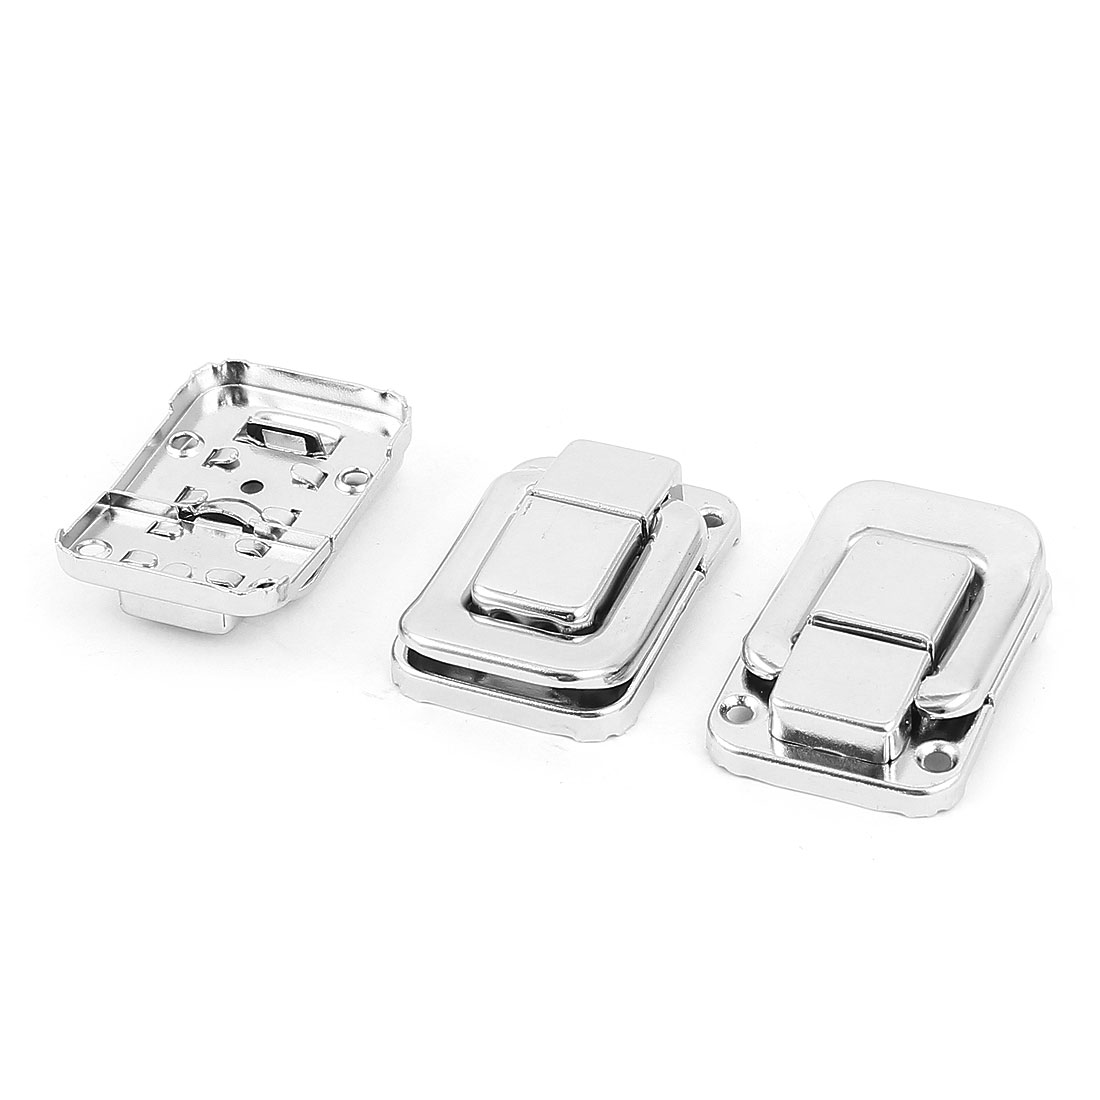 49mm x 33mm Luggage Suitcase Chest Metal Toggle Catch Latch Silver Tone 3Pcs